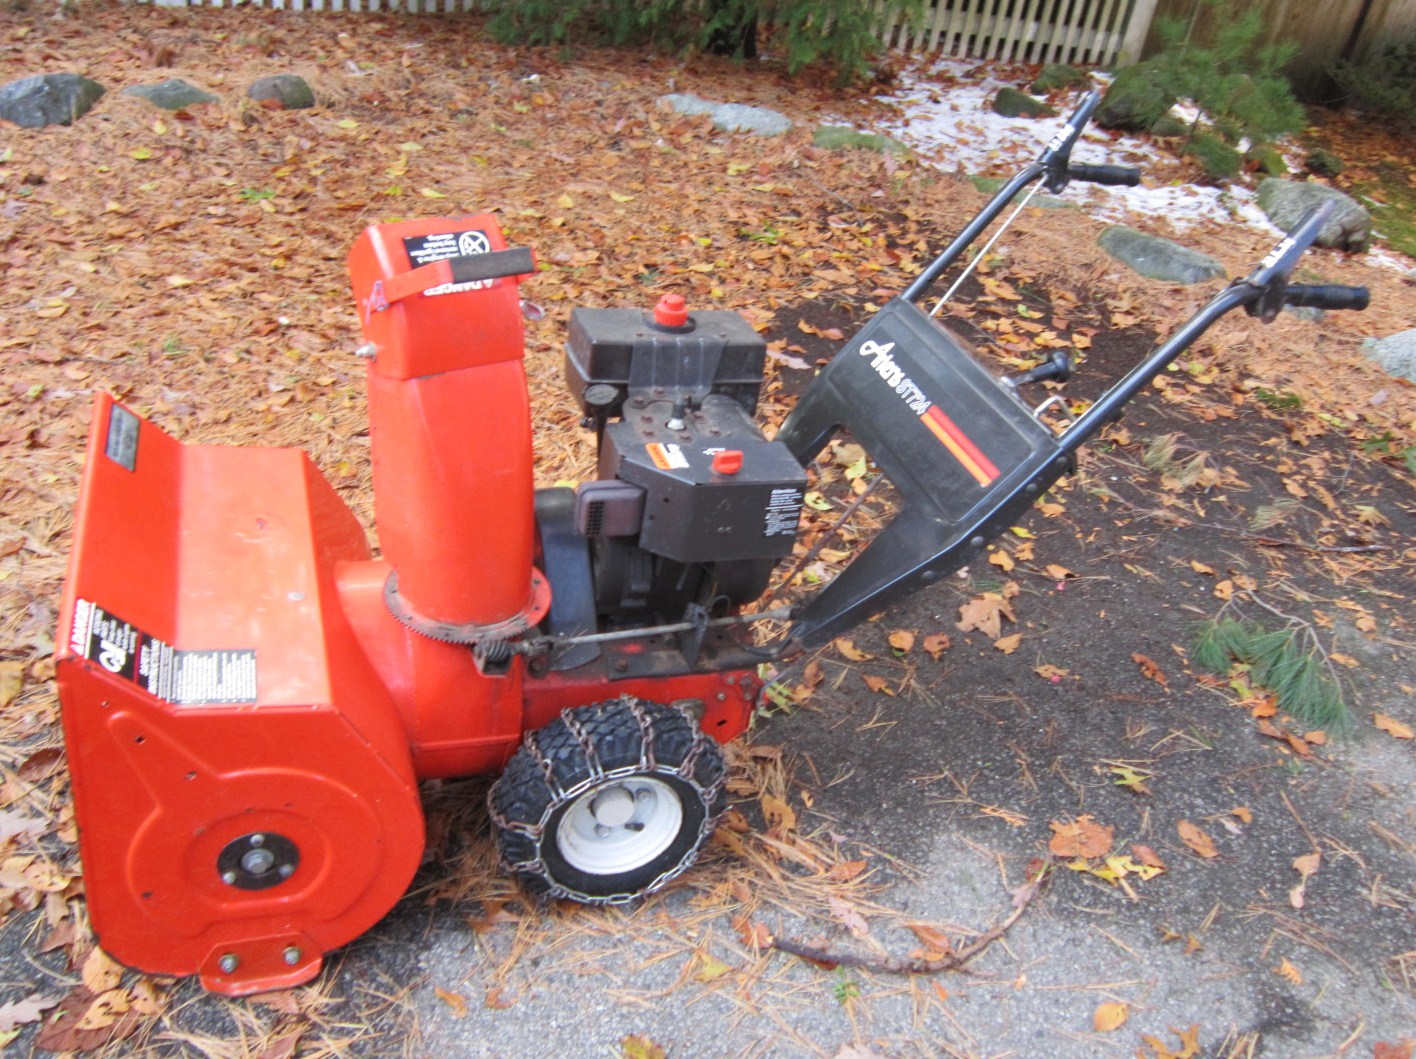 Article 17: A Brief History of Ariens Mid-Sized Snow Blowers